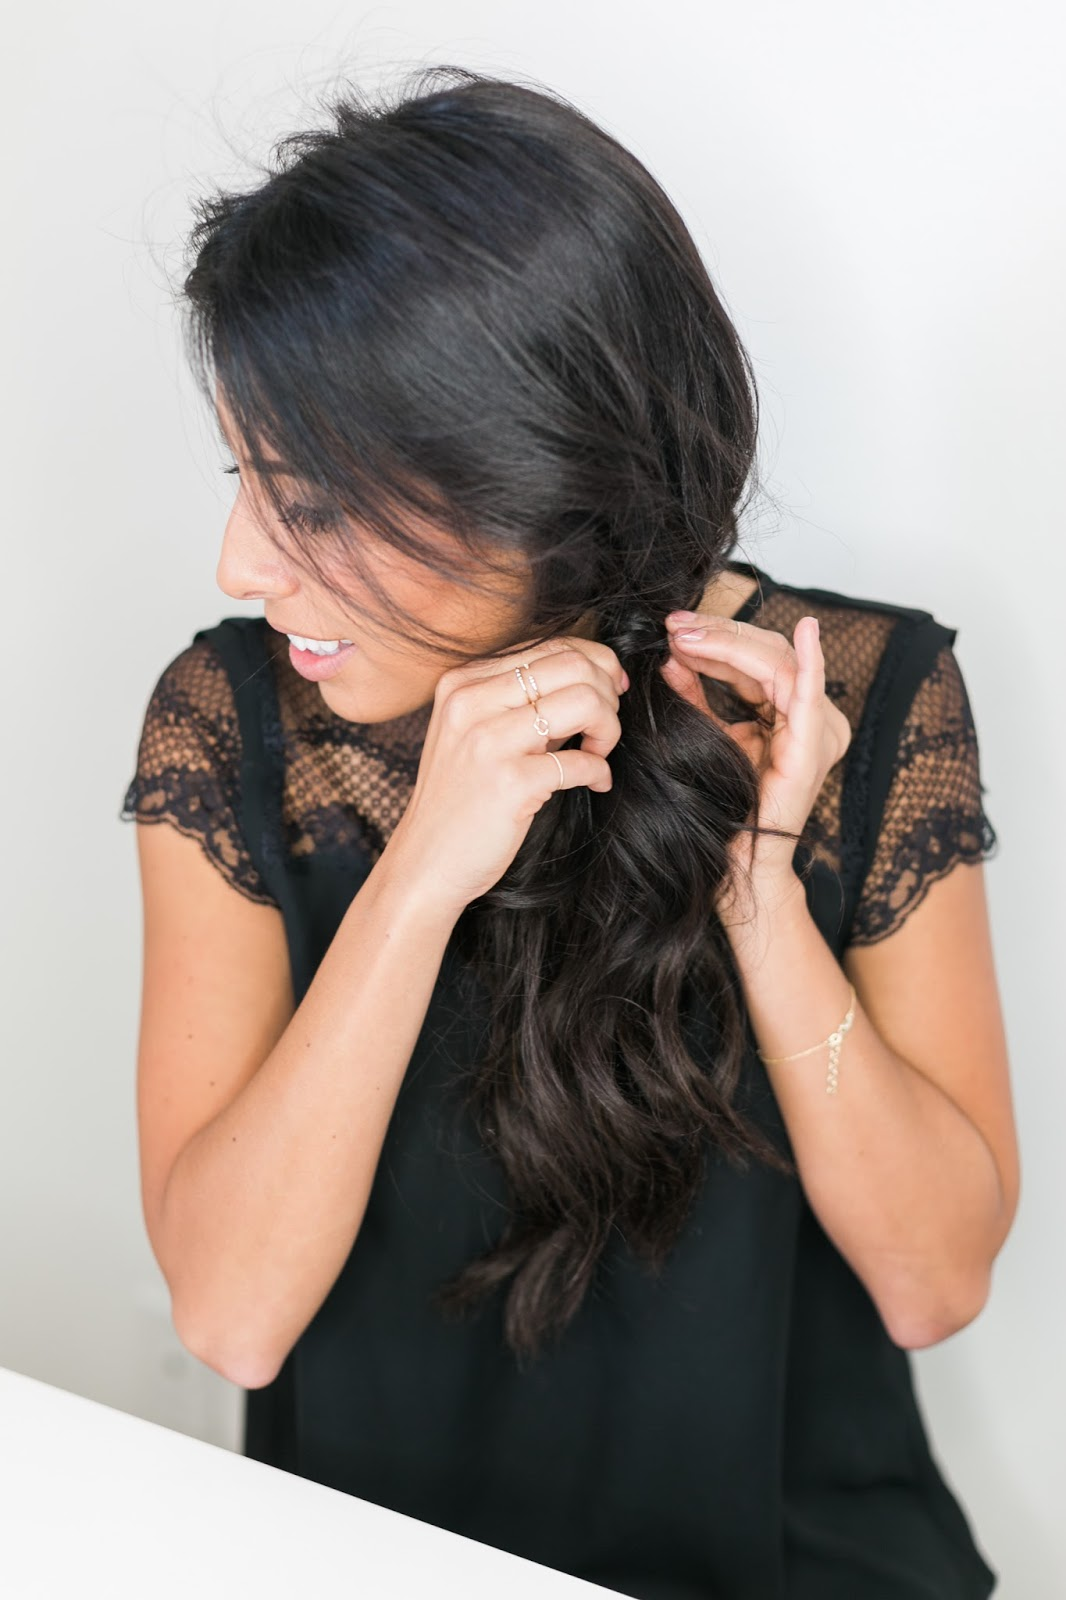 hairstyles for the holidays, easy 5 minute hair dos, target holiday